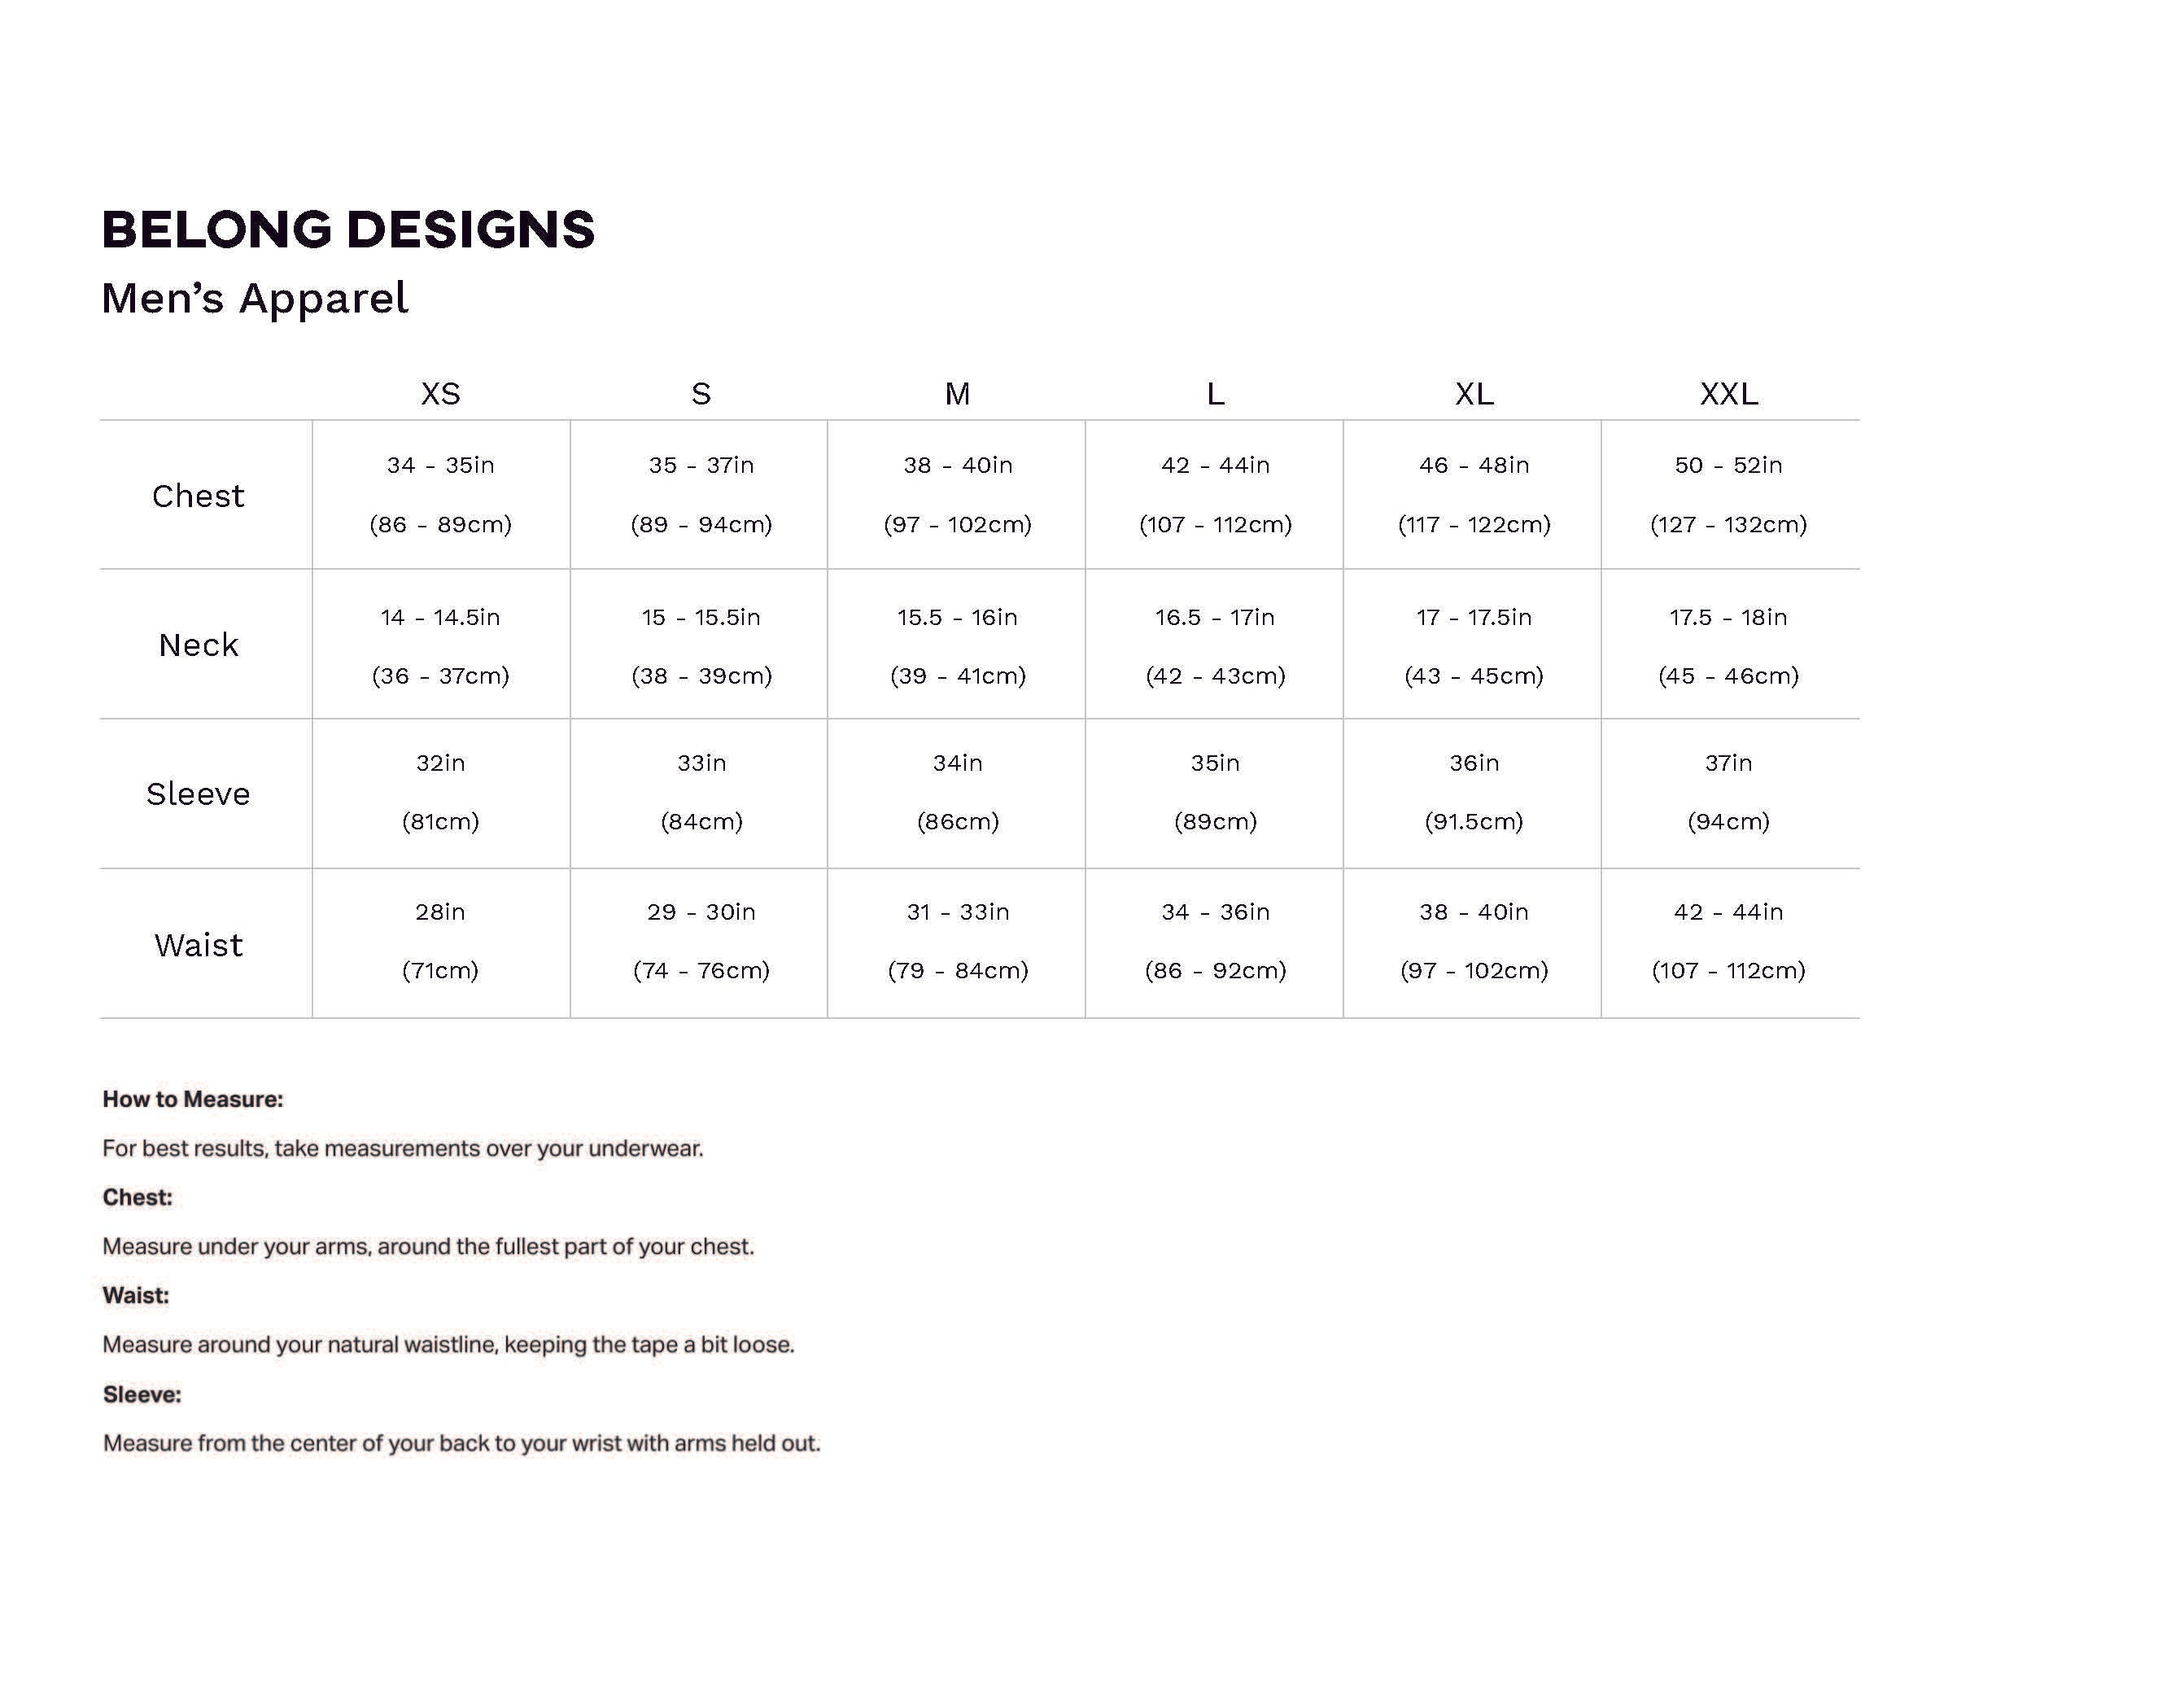 Belong Designs Sizing Chart